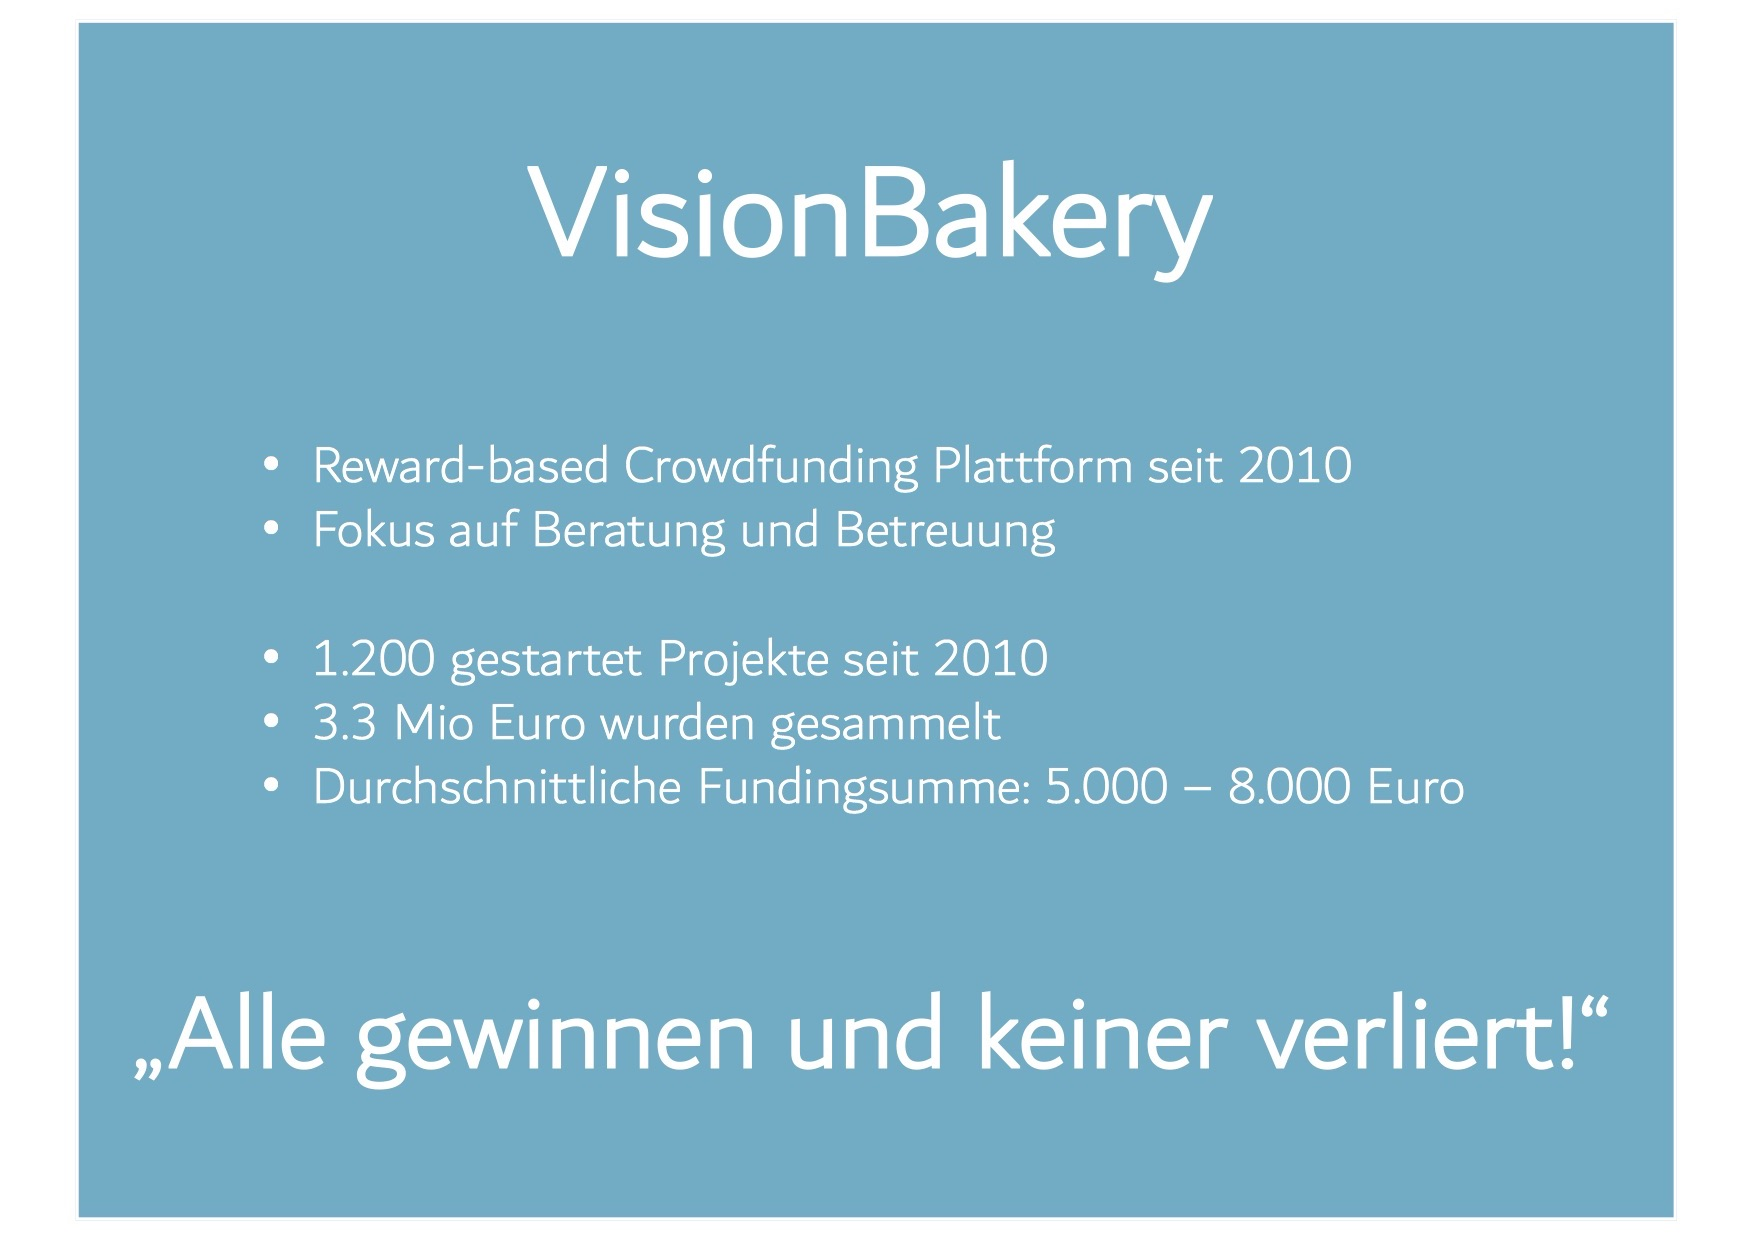 vision_bakery3